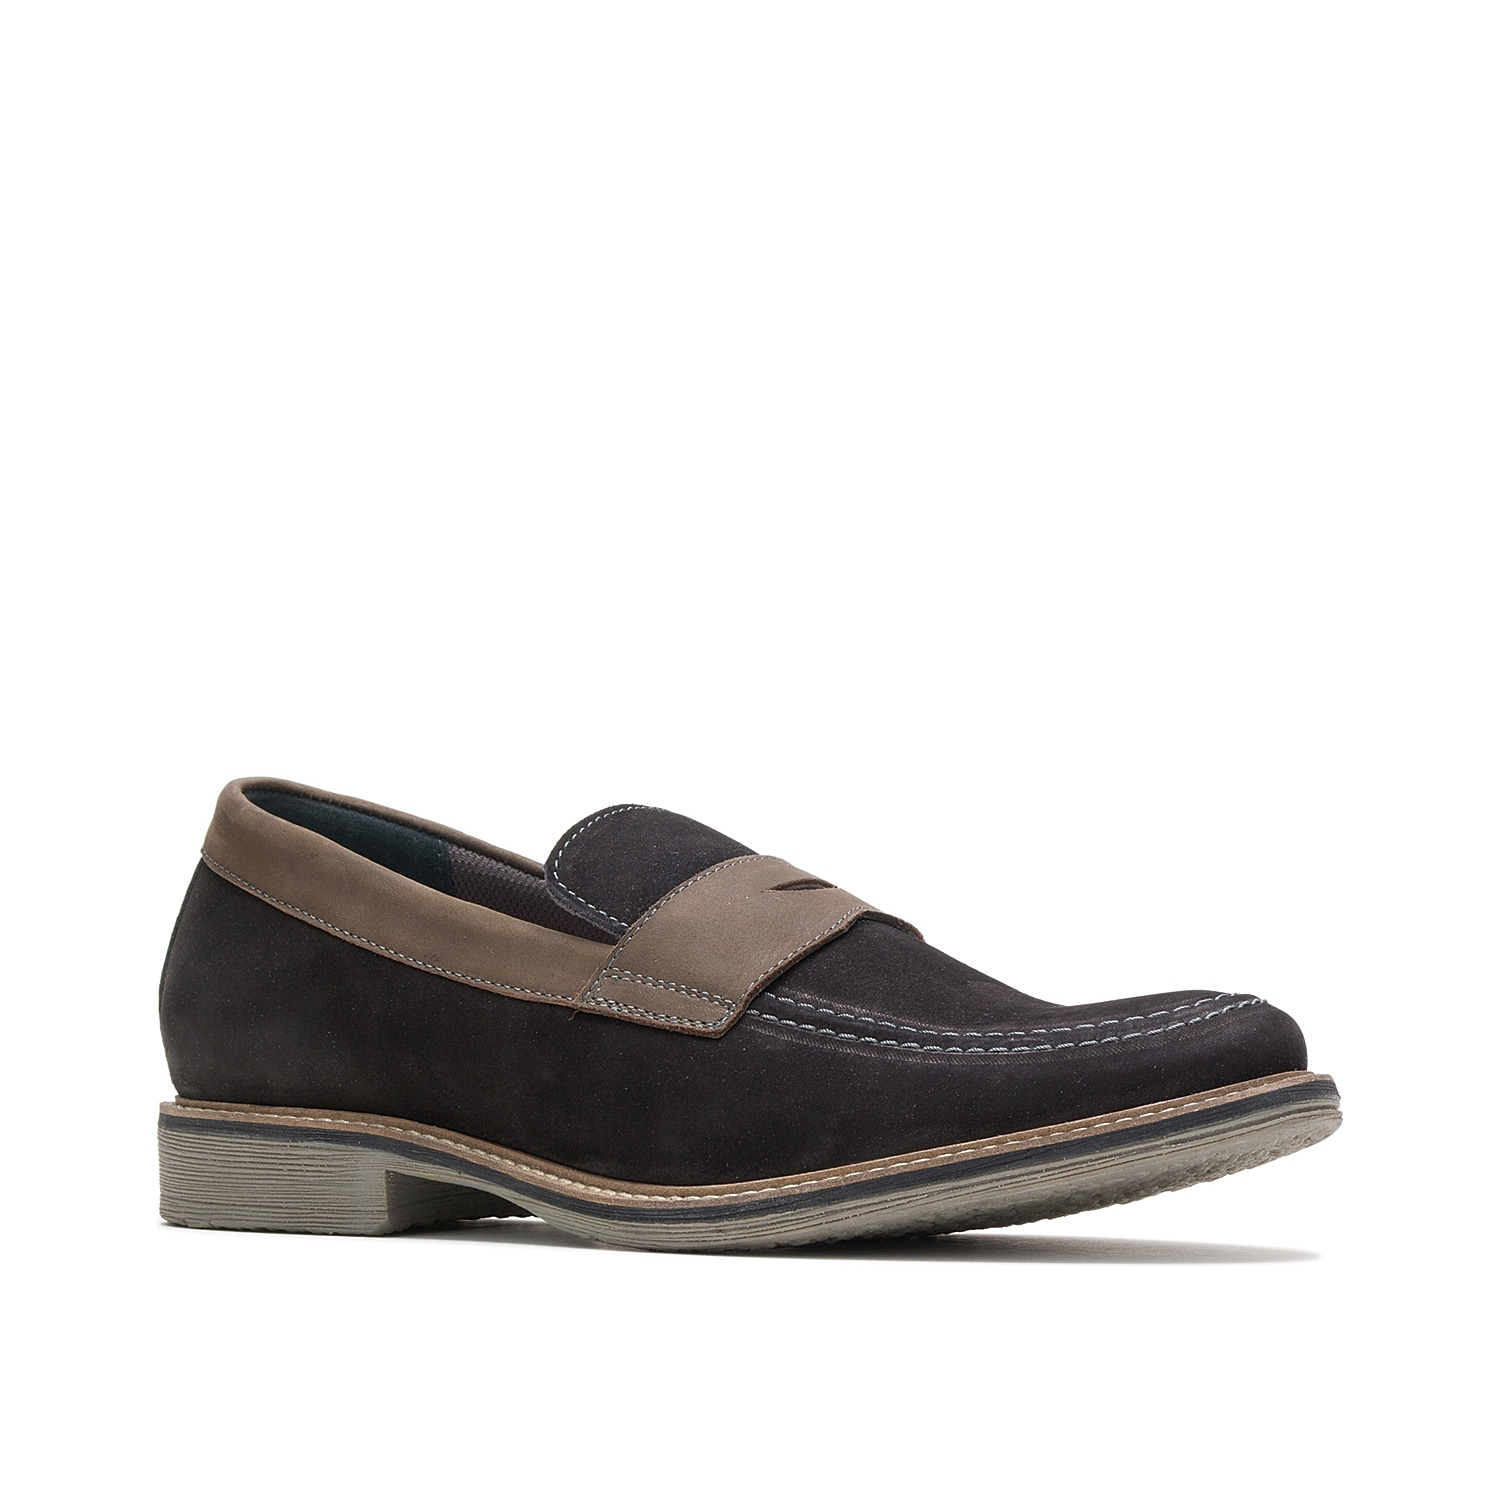 Freshen up tailored looks with the Giles penny loafer from Hush Puppies. With a contrasting midsole and colorblock styling, this leather pair will complement all your slacks or jeans.